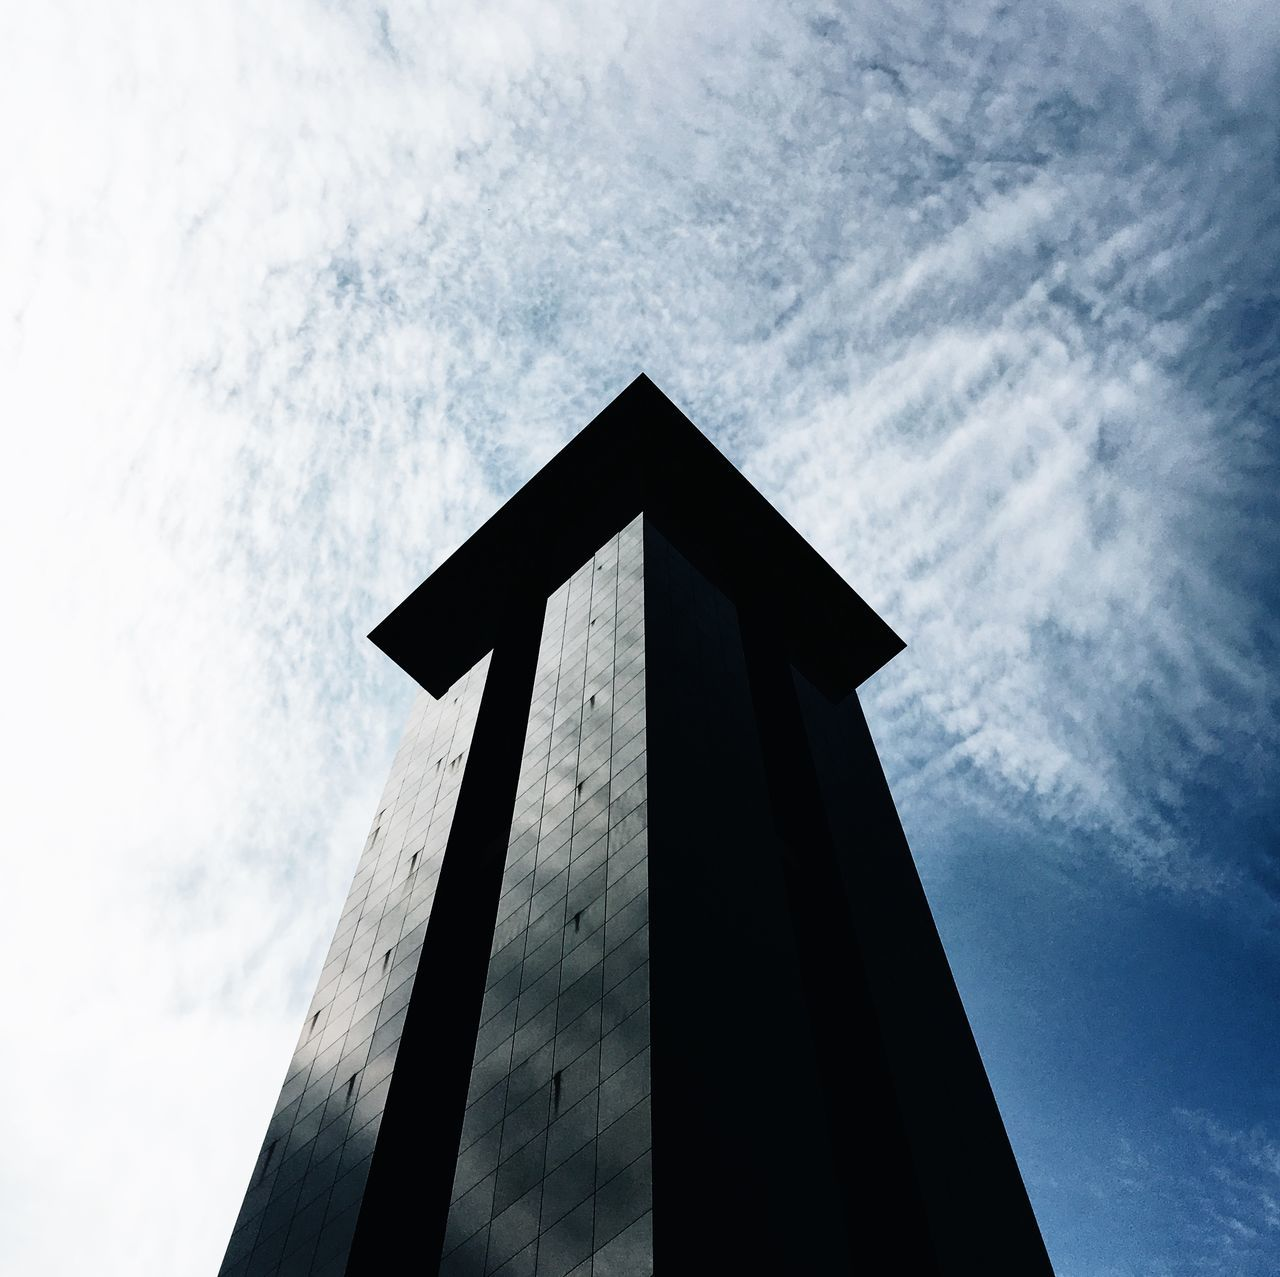 Architecture Berlin Blue Sky White Clouds City Urban Geometry Bell Tower Building Exterior Built Structure Contrast Edges Geometry Harsh Light Light And Shadow Low Angle View Modern Summer Sunny Day Tower